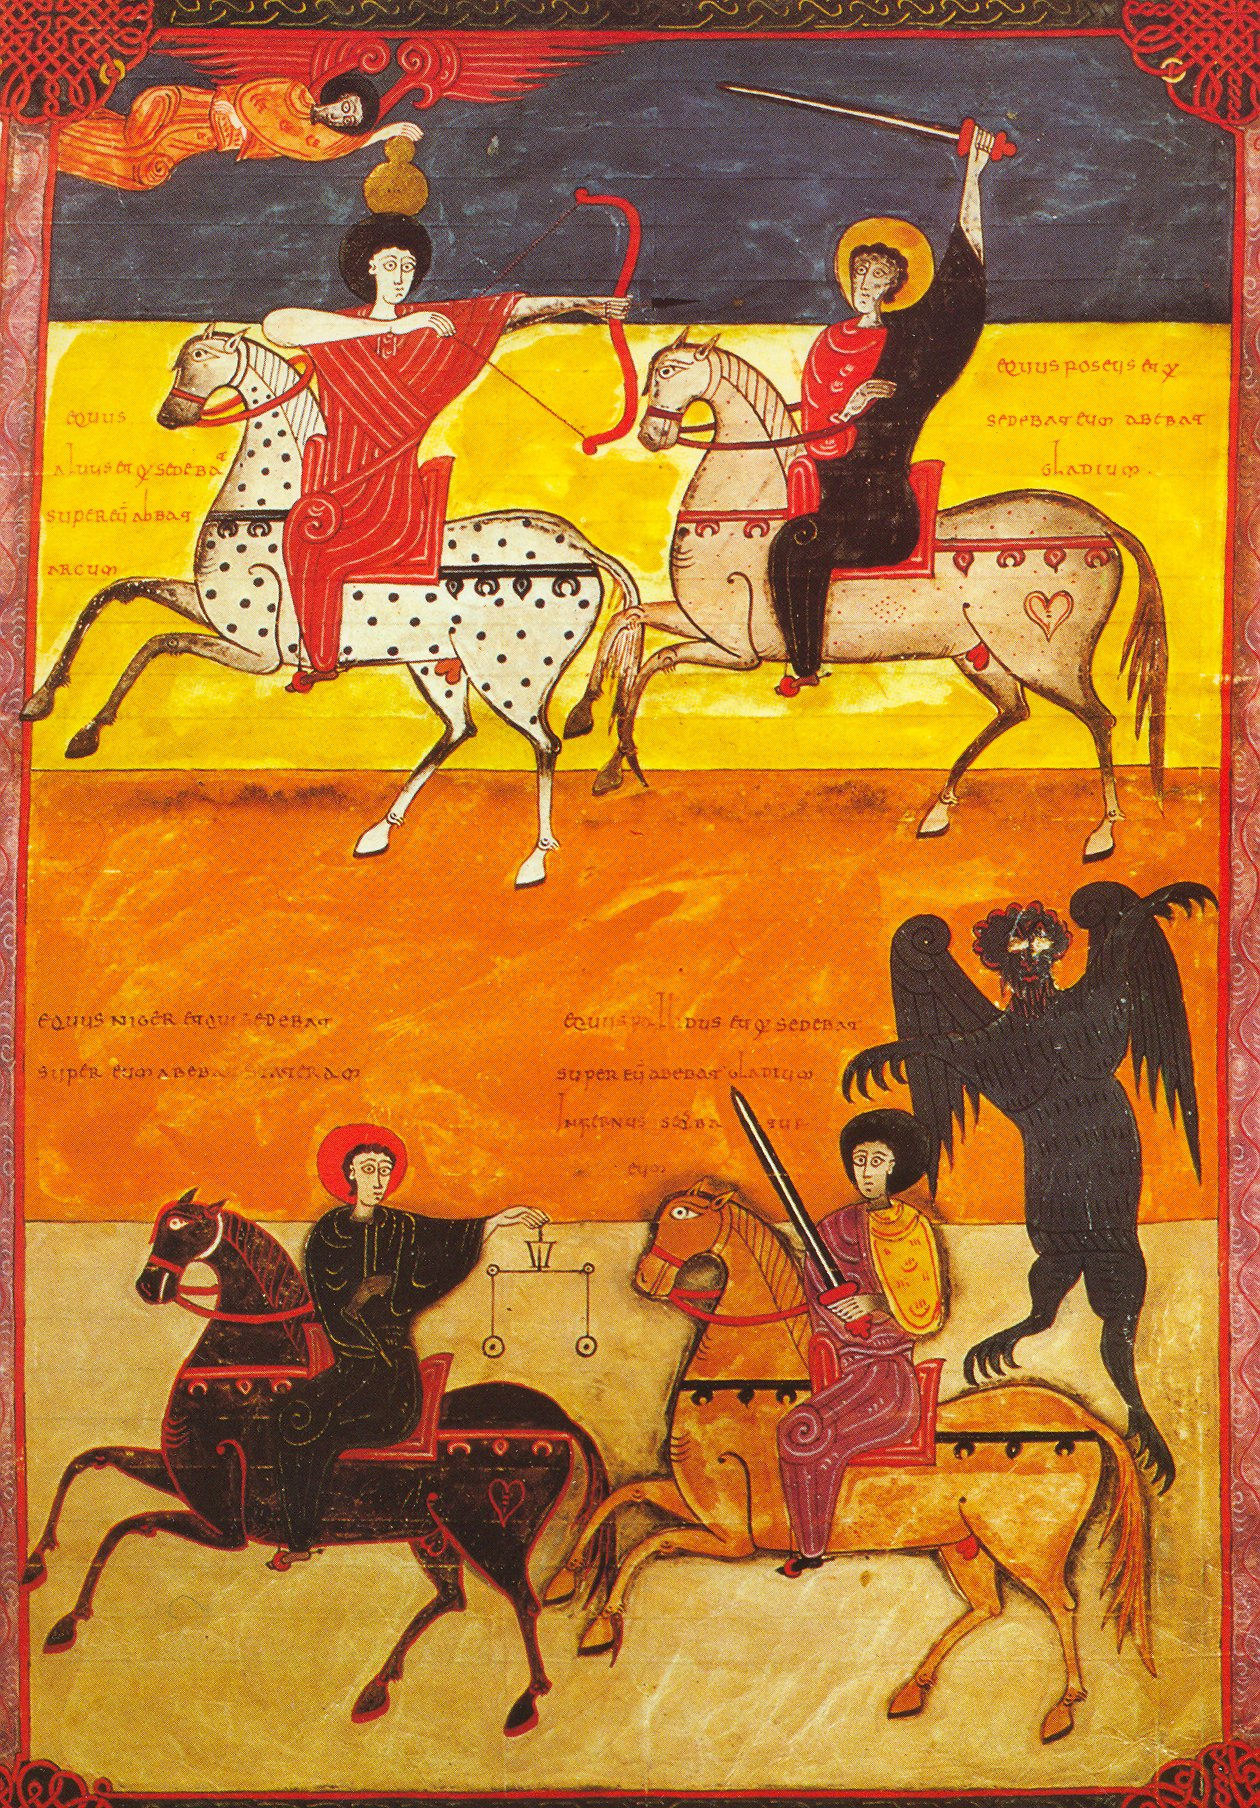 Four Horsemen Of Apocalypse, illustration of 'Beato of Valcavado', 1047, Beato of Facundus, León, Al-Andalus (now Spain)